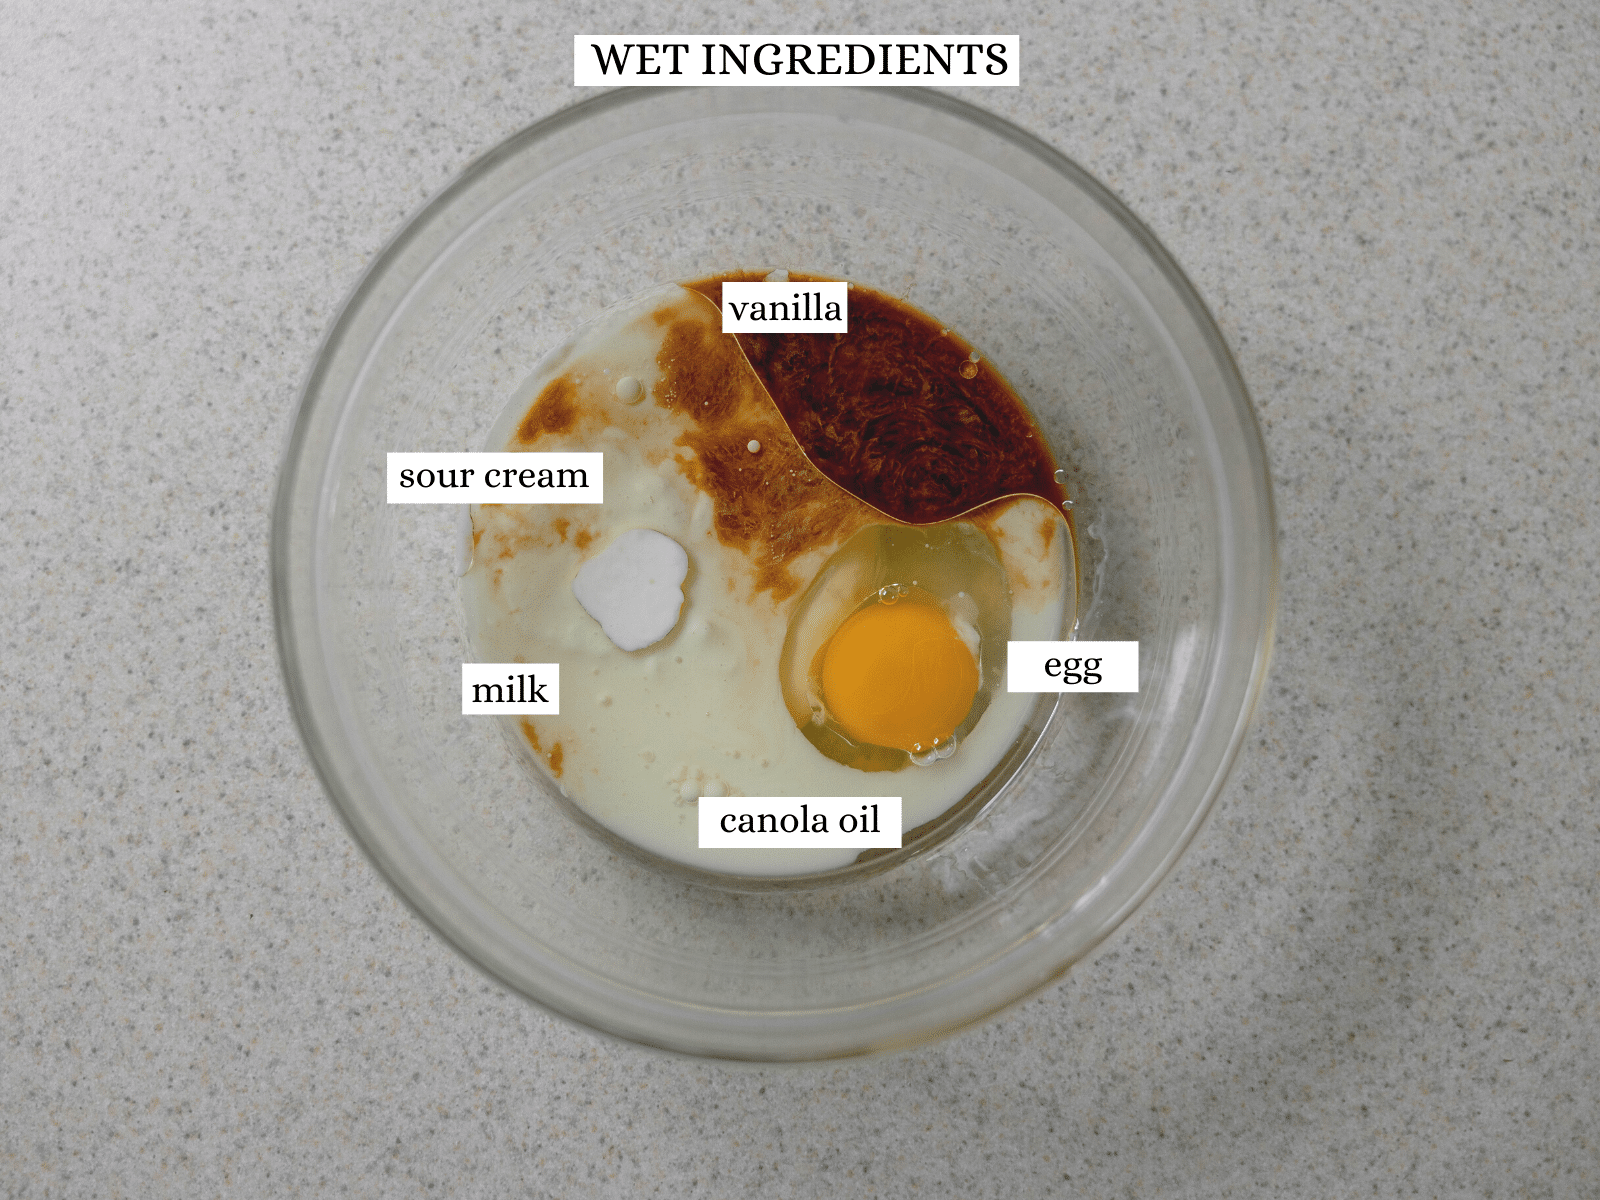 The wet ingredients (vanilla, sour cream, milk, an egg and canola oil).